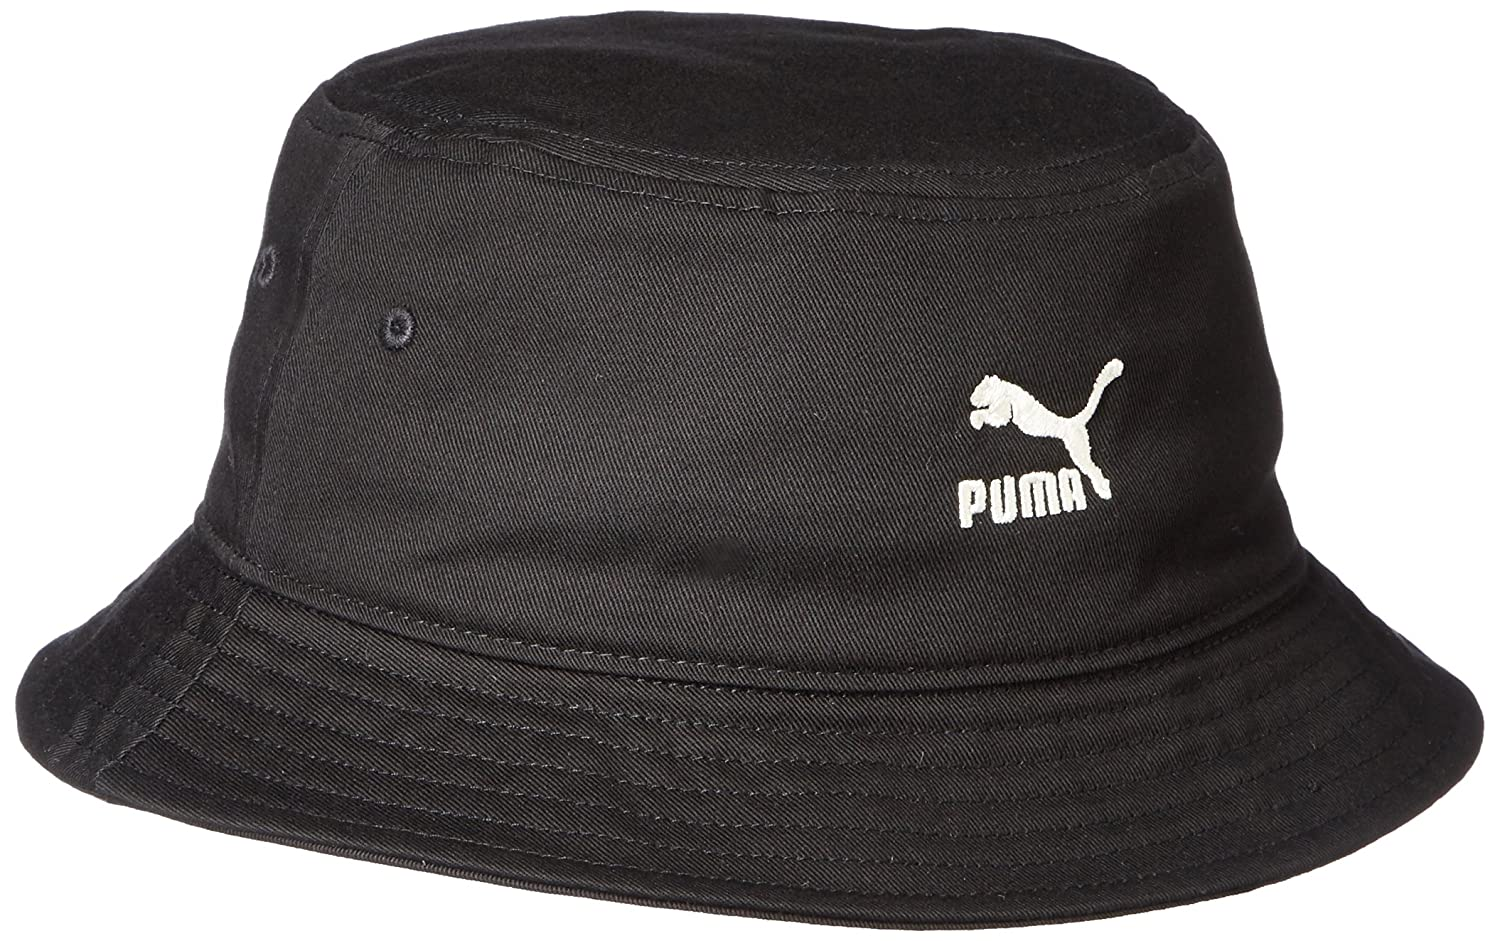 c78aa28591e2f Puma Men s Cotton Bucket Hat (021172 Black)  Amazon.in  Clothing    Accessories